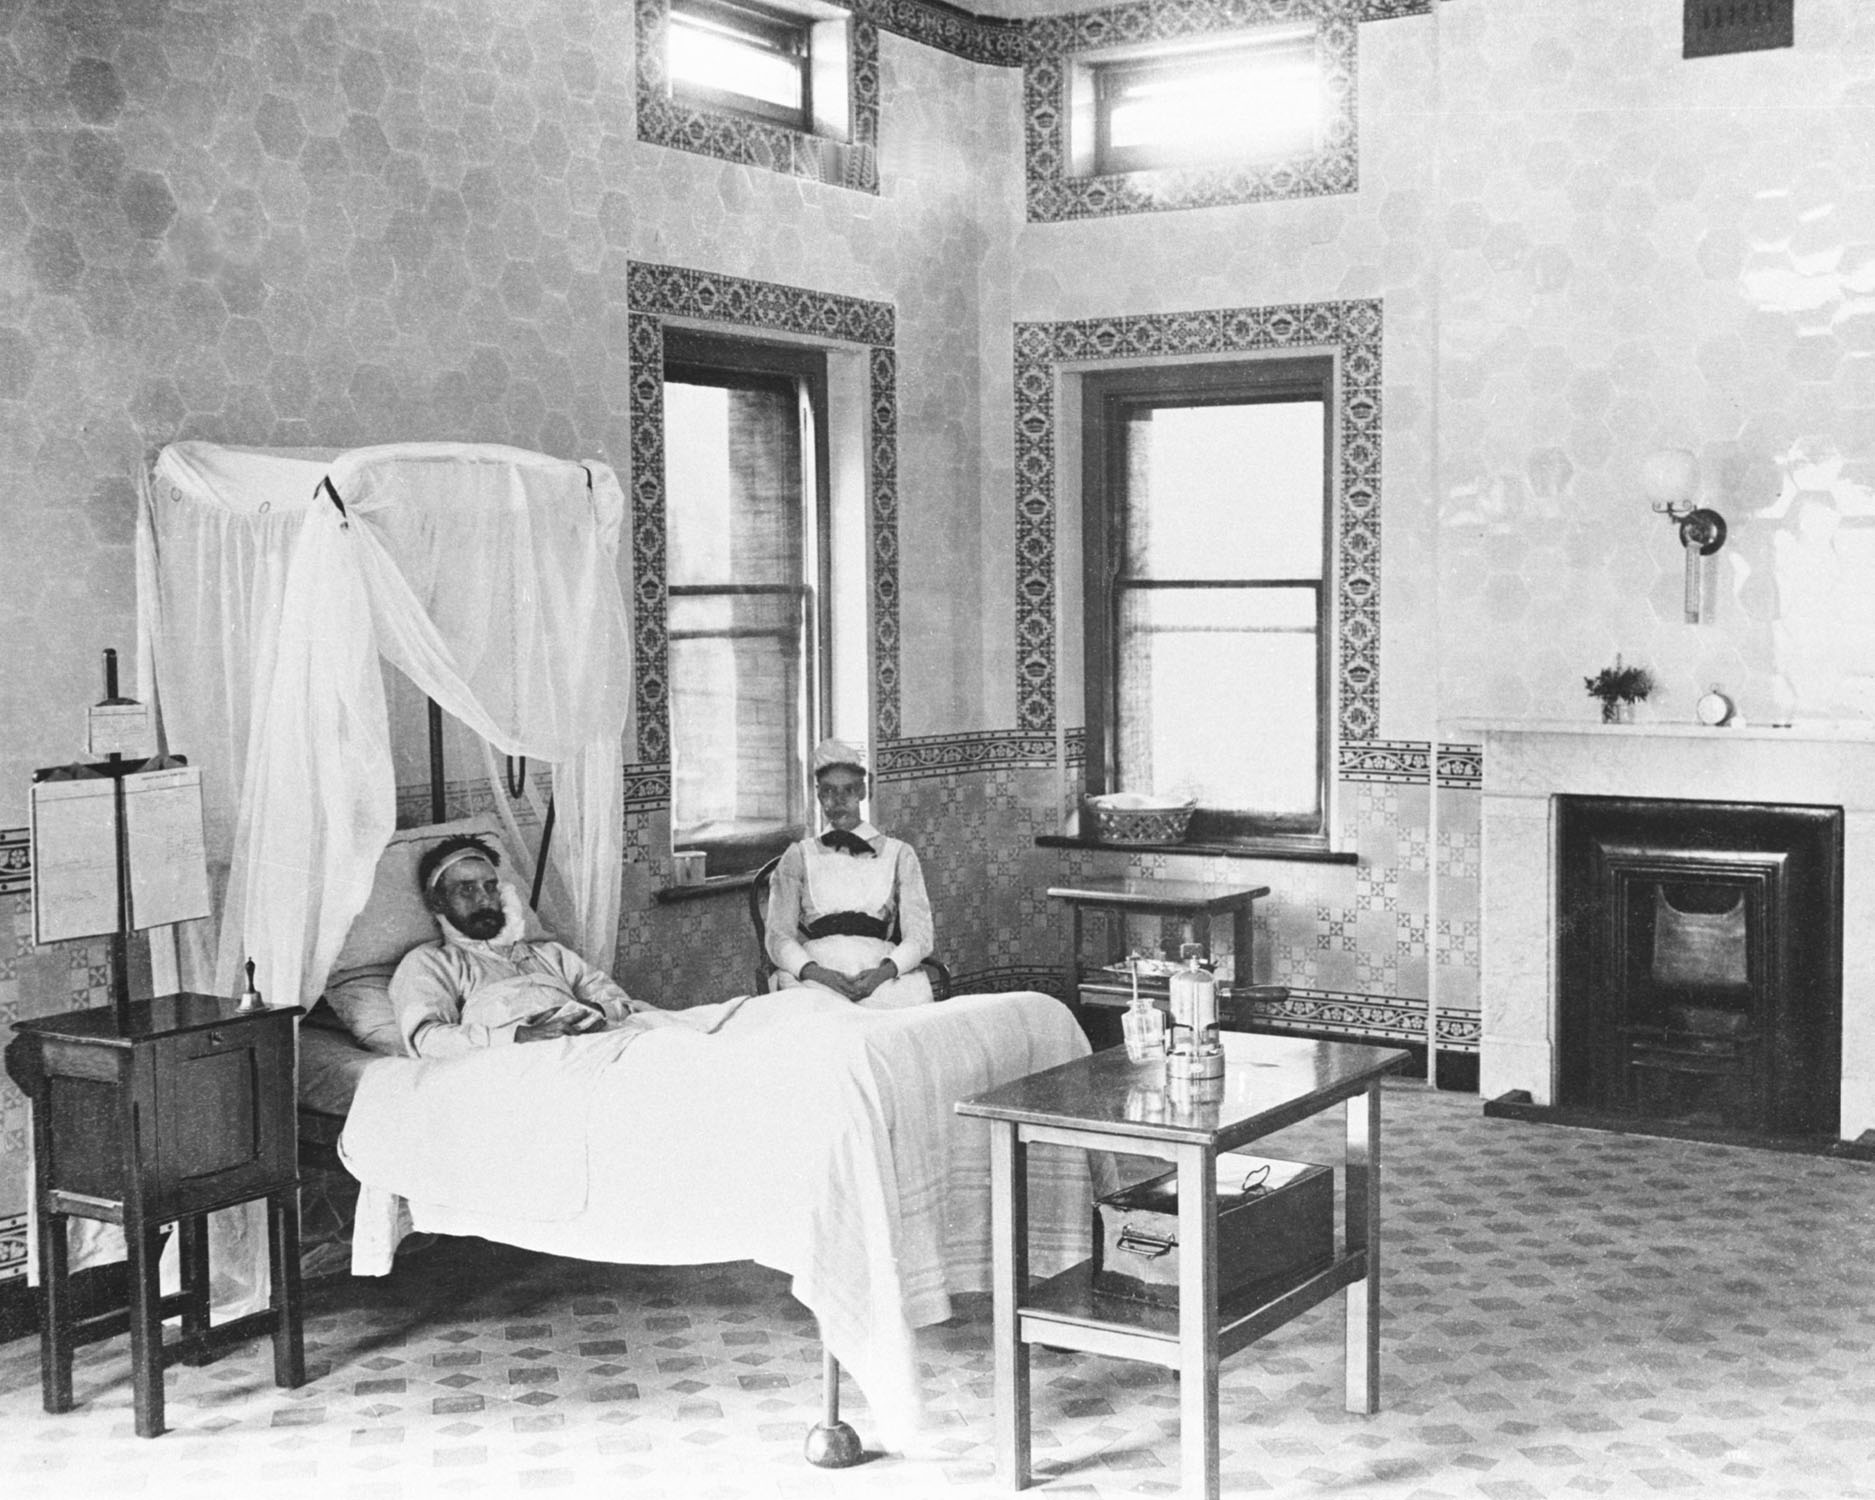 Early Infectious Diseases ward at Royal Prince Alfred Hospital